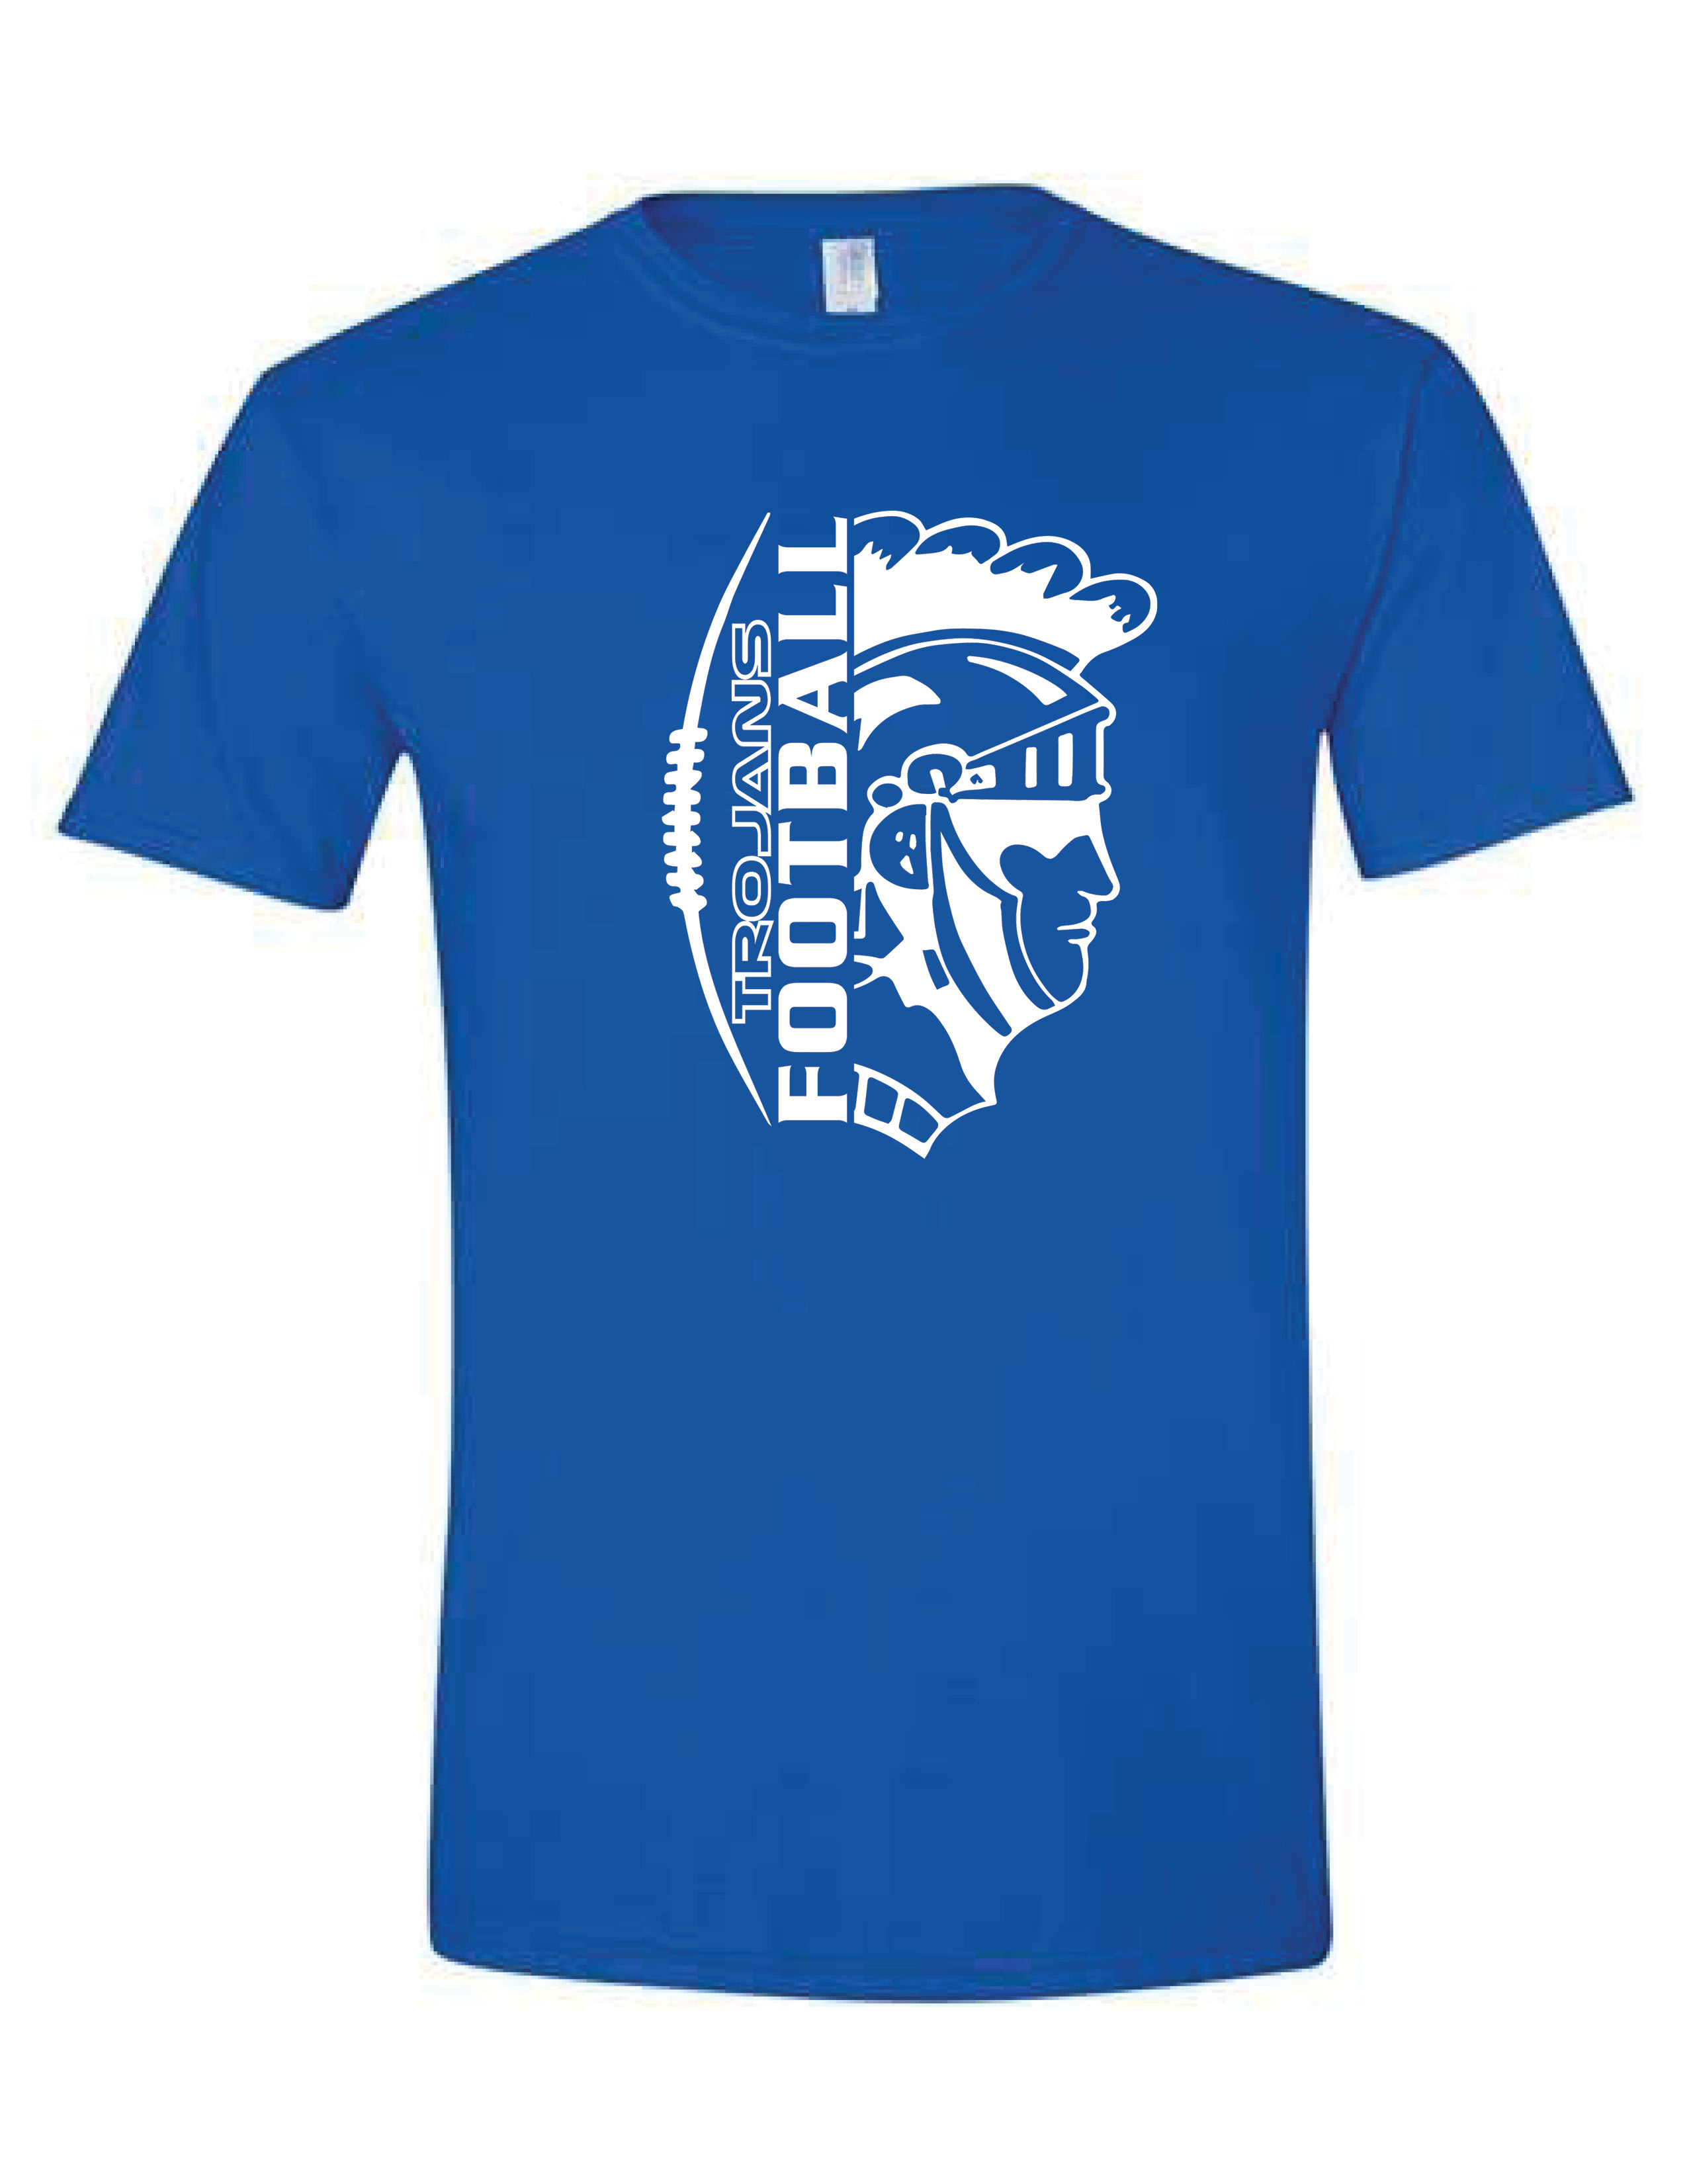 Short Sleeve T-shirt  (TROJAN) (Youth sizes available)